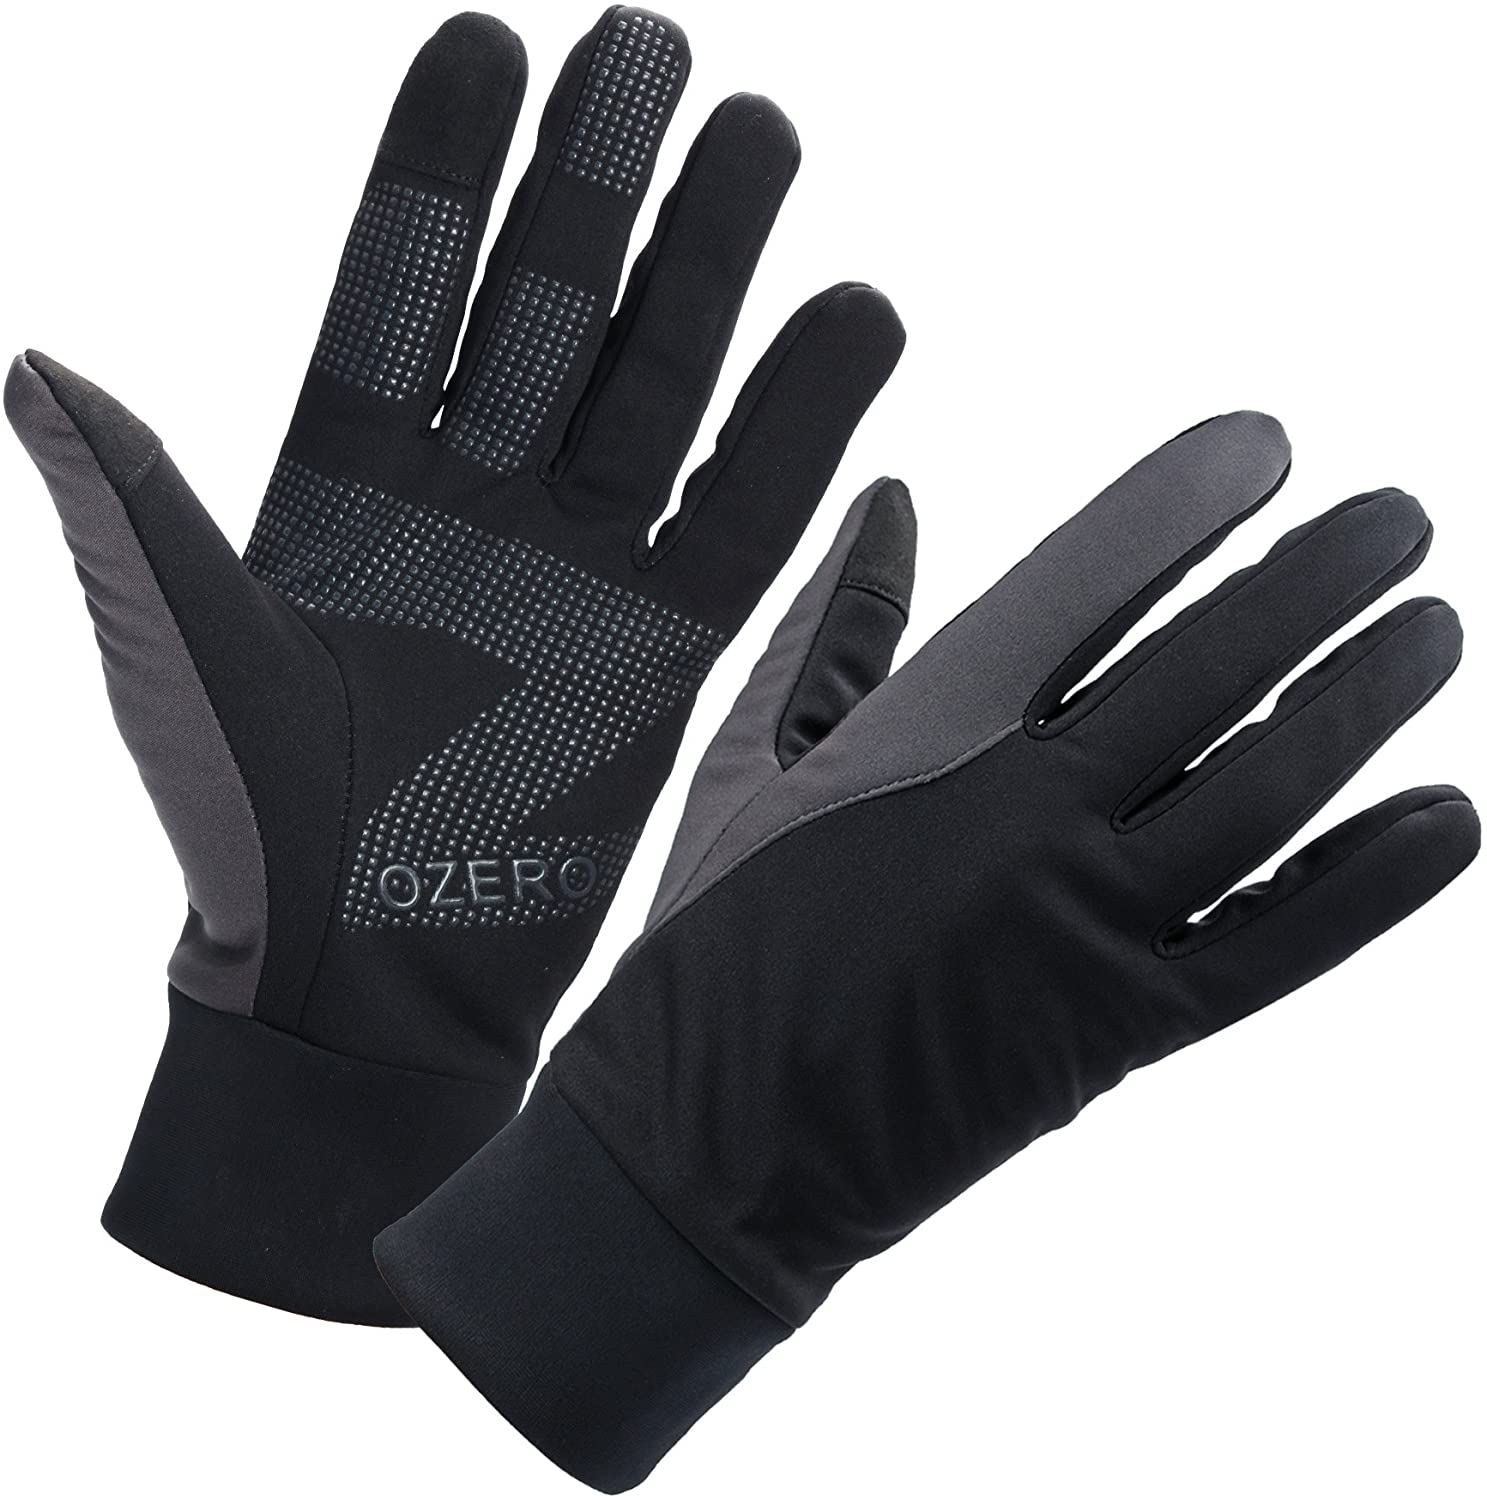 Winter Windproof Men/'s White Gloves Formal Parade Guard Polyester Gloves Running Driving Cycling Outdoor Thermal Touchscreen Gloves